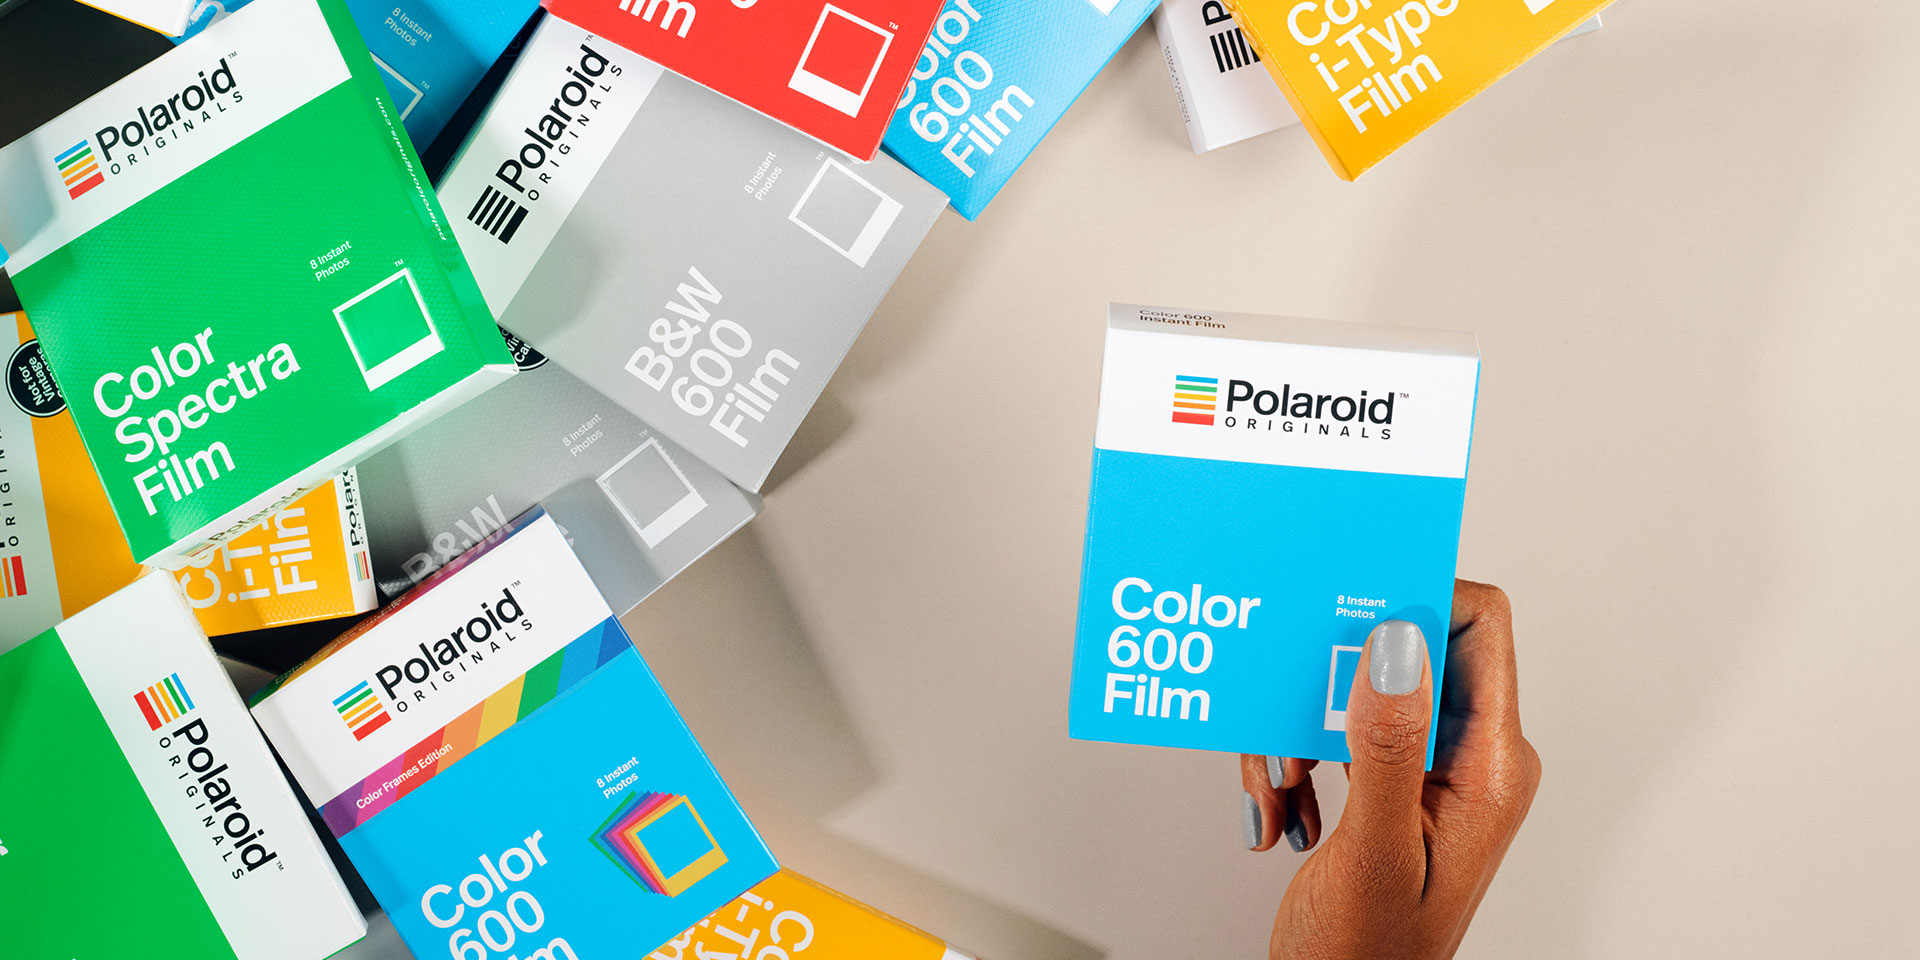 polaroid-originals-distributor-reseller